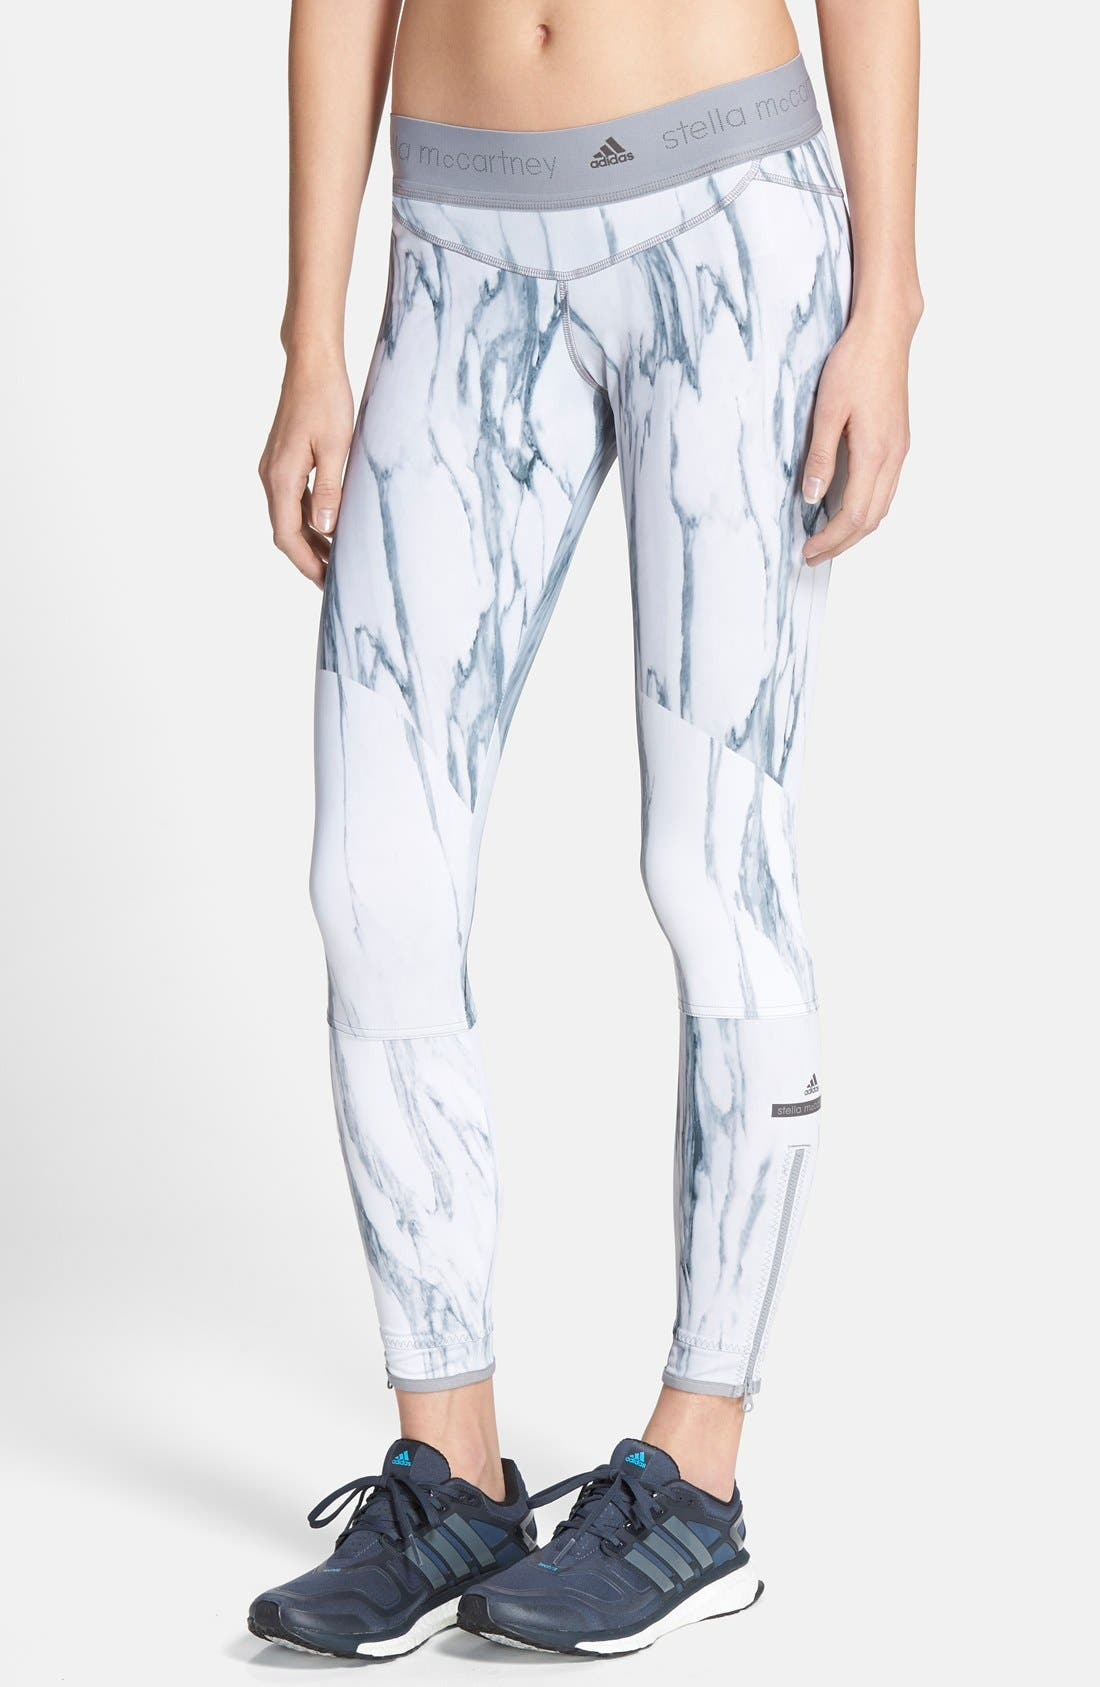 Alternate Image 1 Selected - adidas by Stella McCartney 'Run' Print Tights